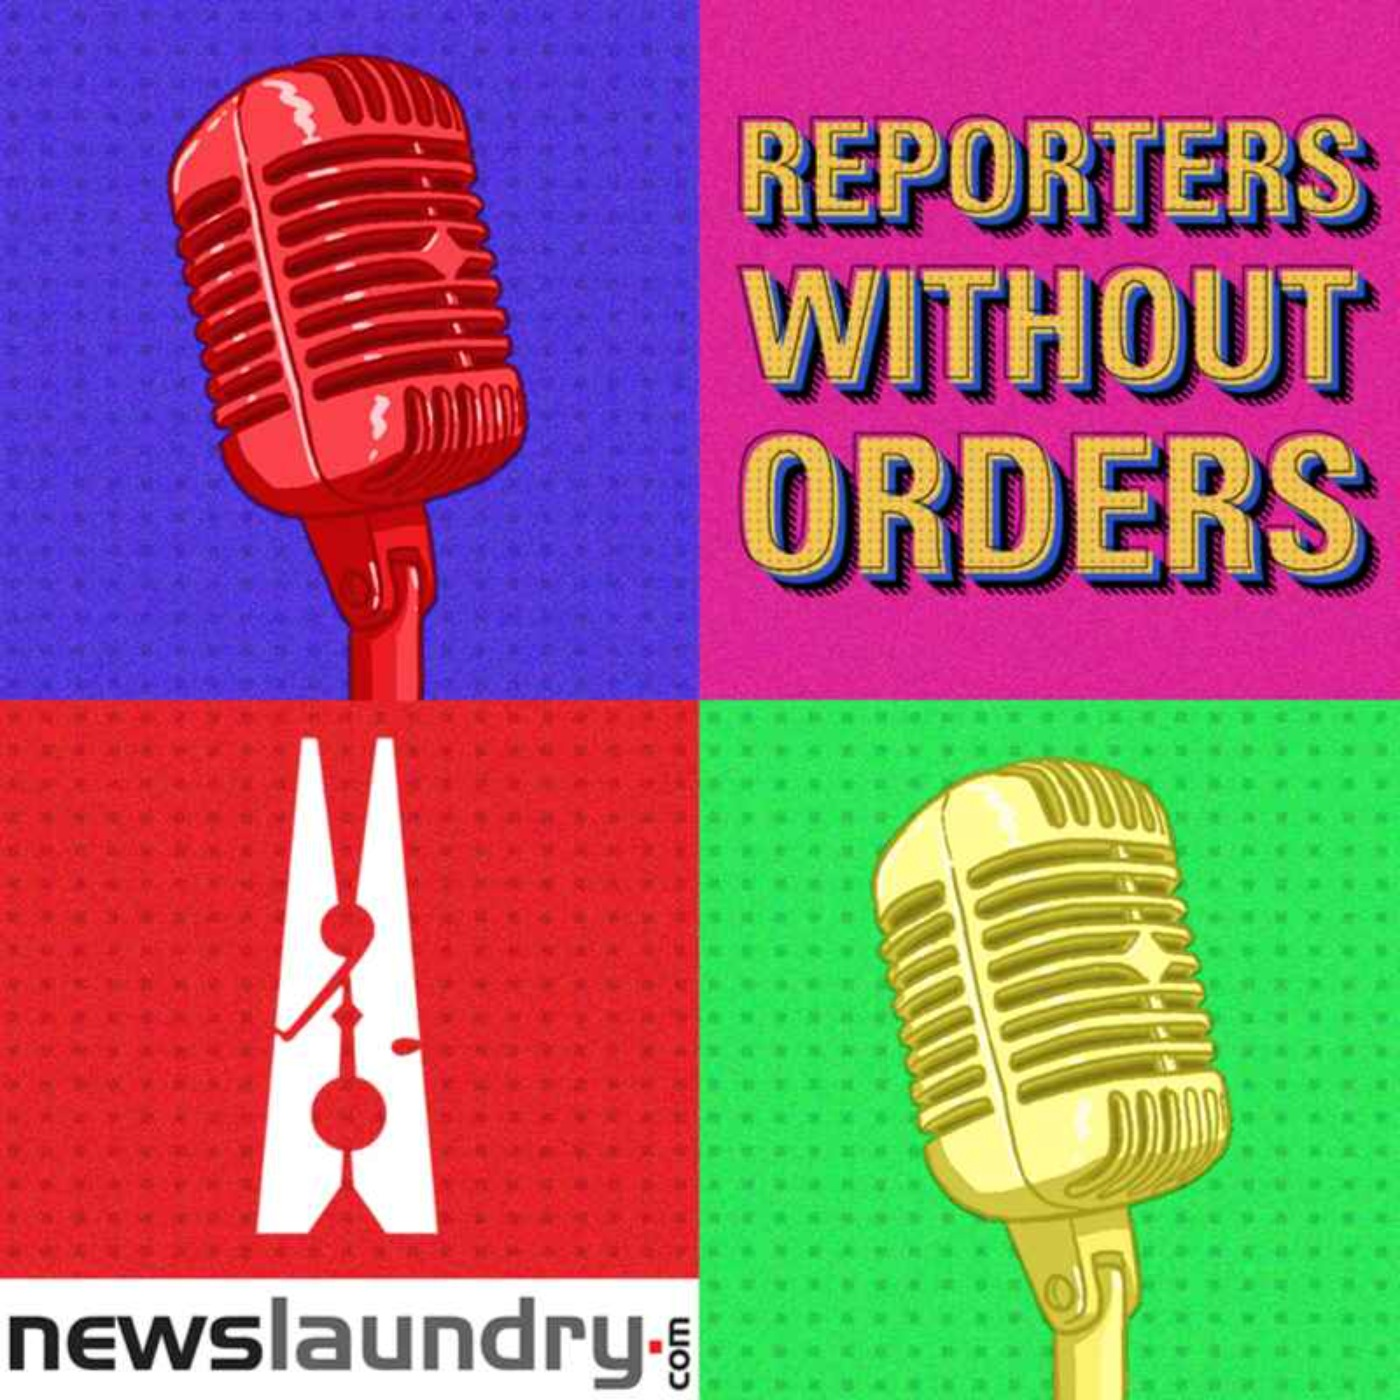 Reporters Without Orders Ep 167: Covid in eastern UP and Modi's bad international press